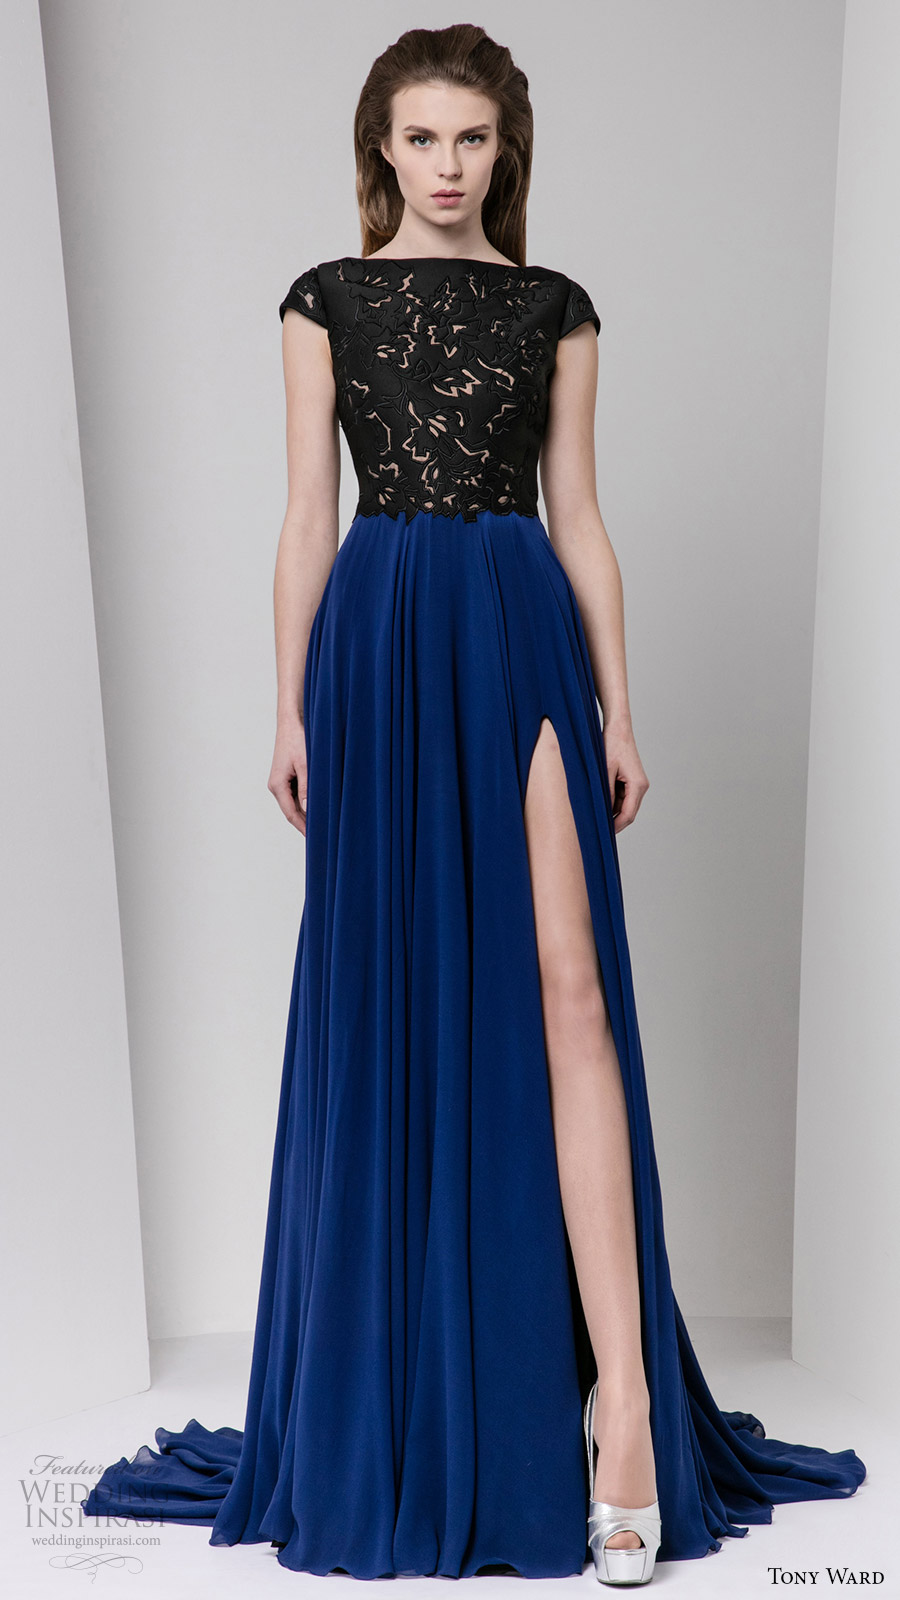 tony ward fall winter 2016 2017 rtw cap sleeves bateau neckline a line evening dress black bodice blue skirt slit